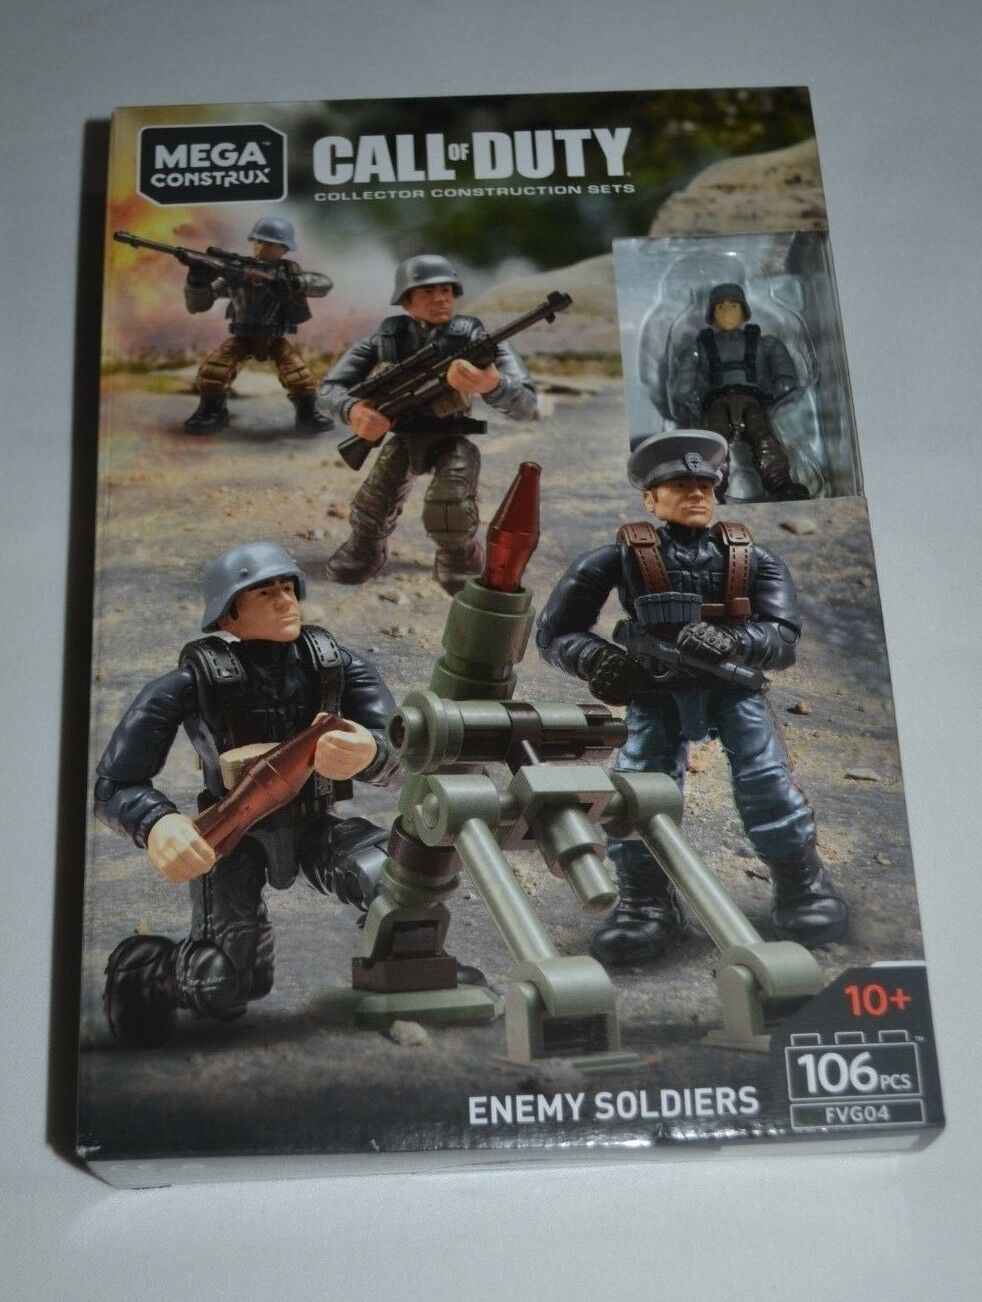 GERMAN SOLDIER  MORTAR LAUNCHER LOOSE ENEMY TROOPS FIGURE MEGA CONSTRUX  X48//1